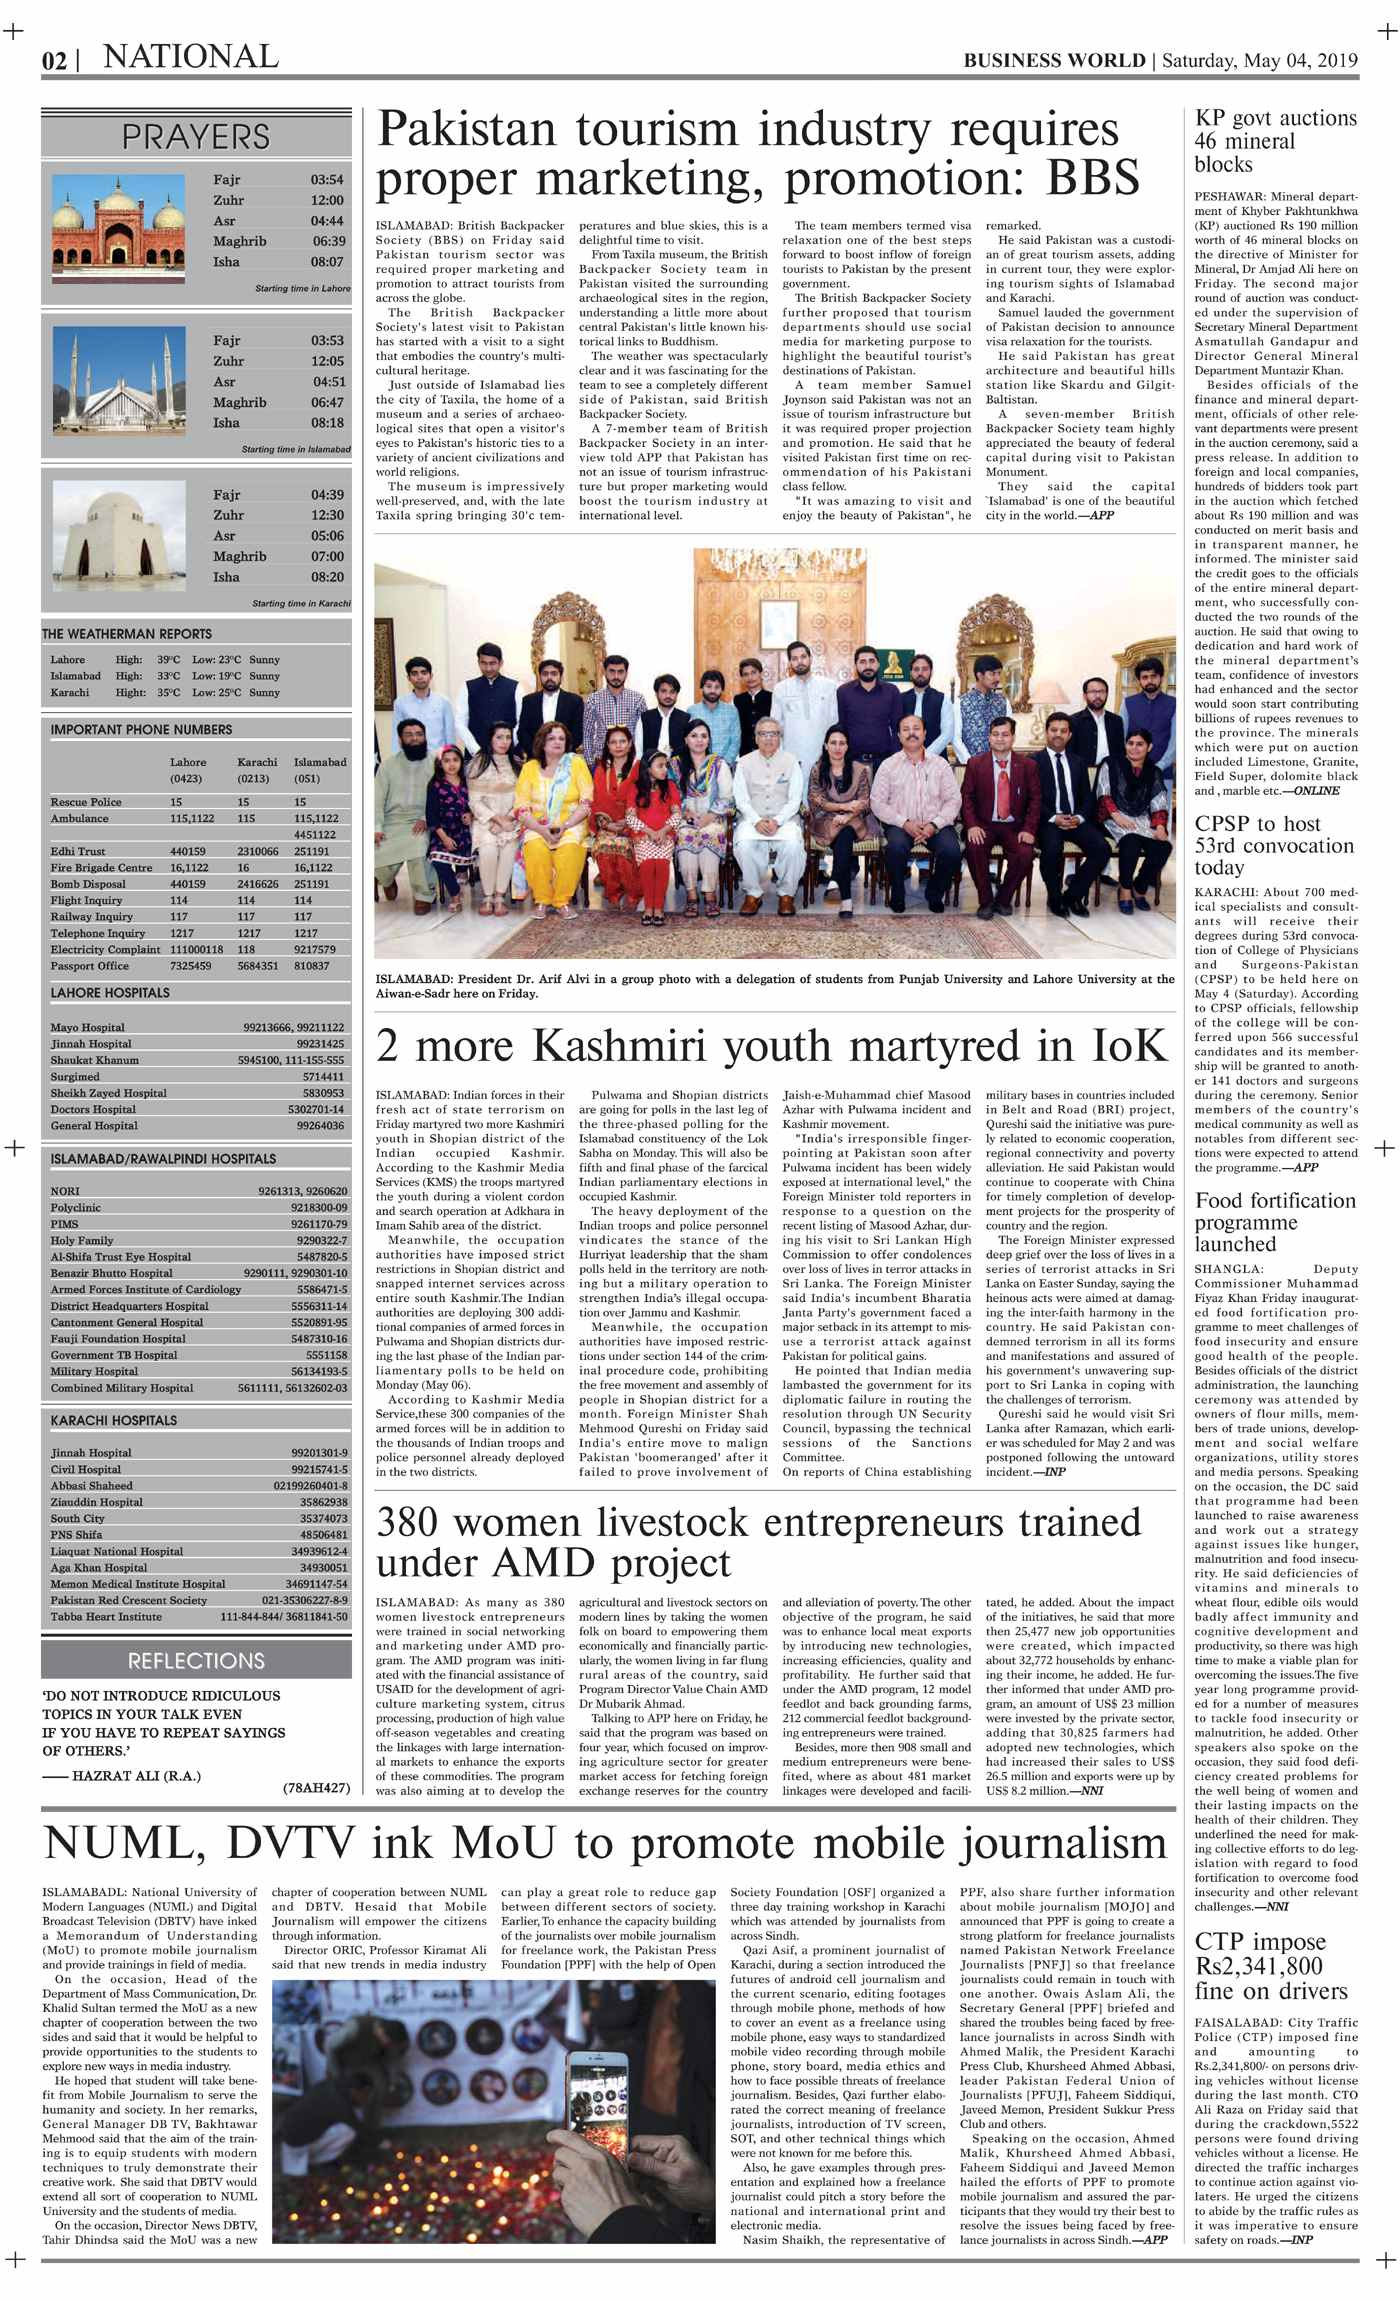 Daily Business World E-Paper 4th May 2019 - Daily Business World